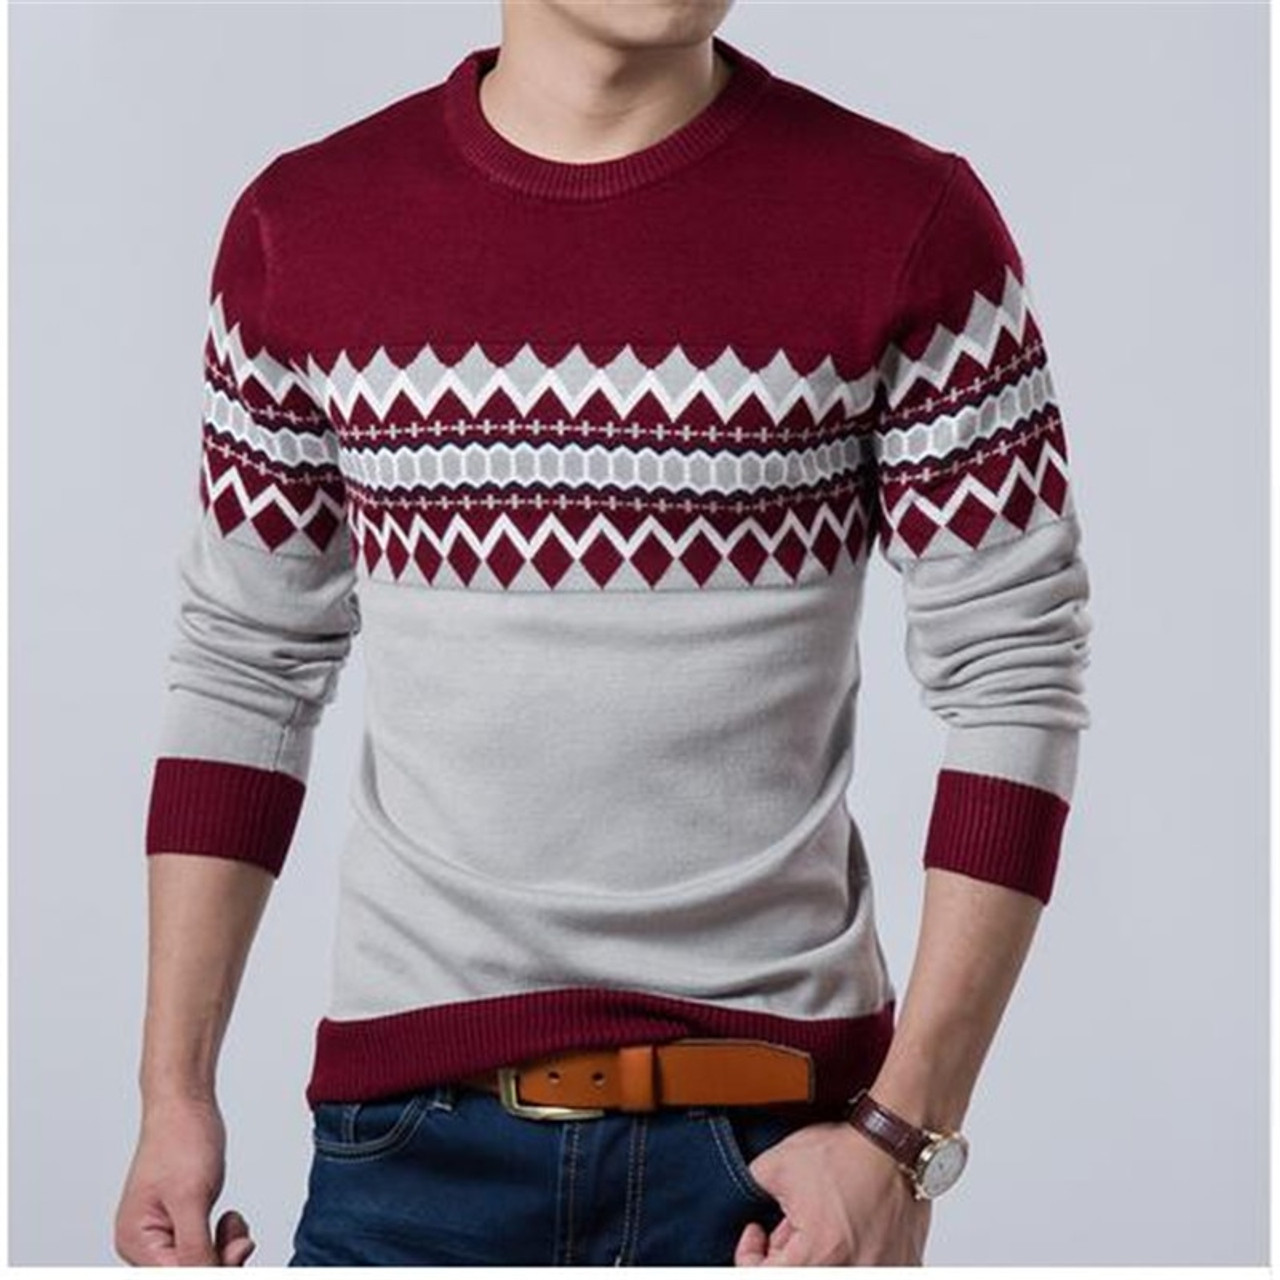 2019 New Autumn Fashion Brand Casual Sweater O-Neck Slim Fit ...